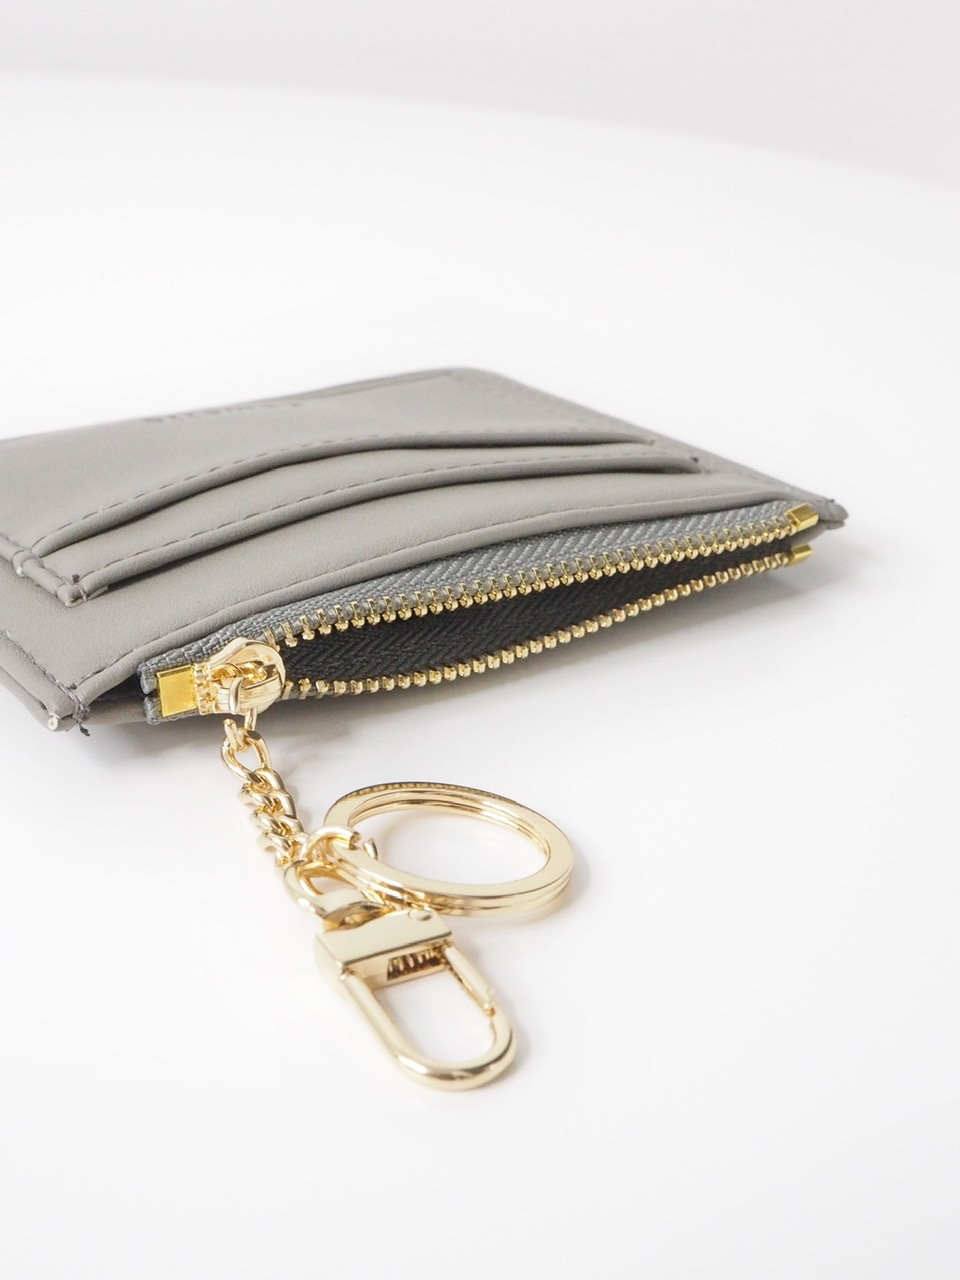 【OR】 simple card key case